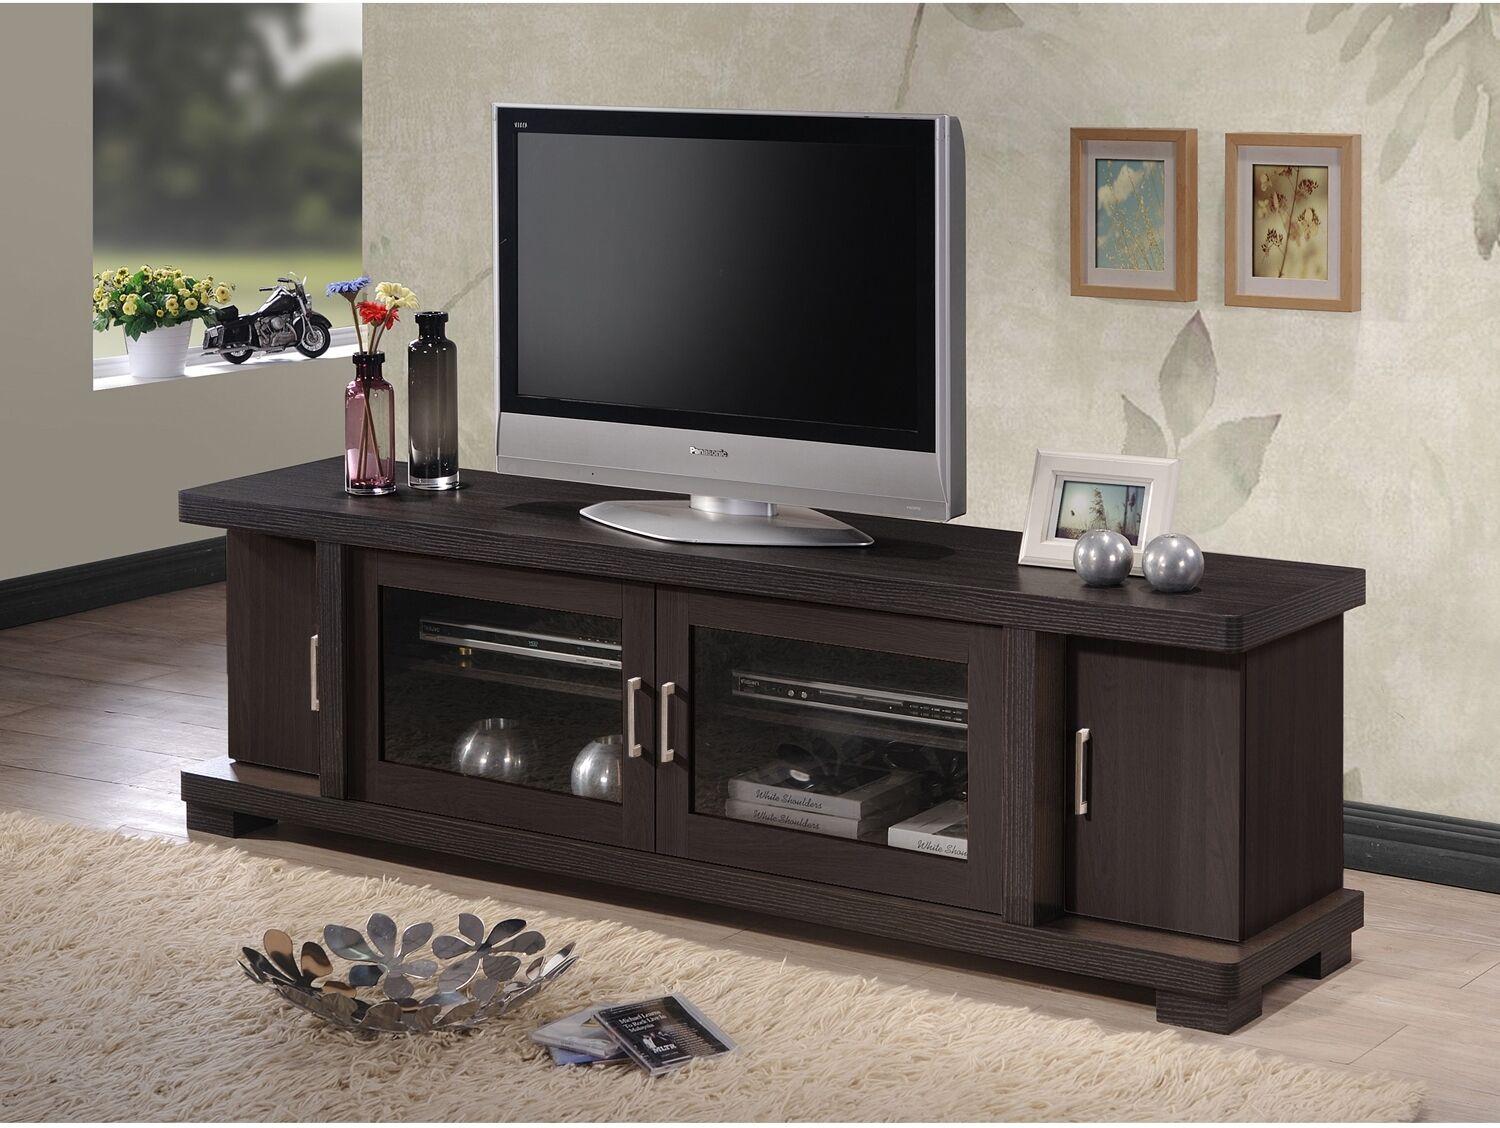 wood tv console 70 inch stand contemporary entertainment center cabinet storage ebay. Black Bedroom Furniture Sets. Home Design Ideas